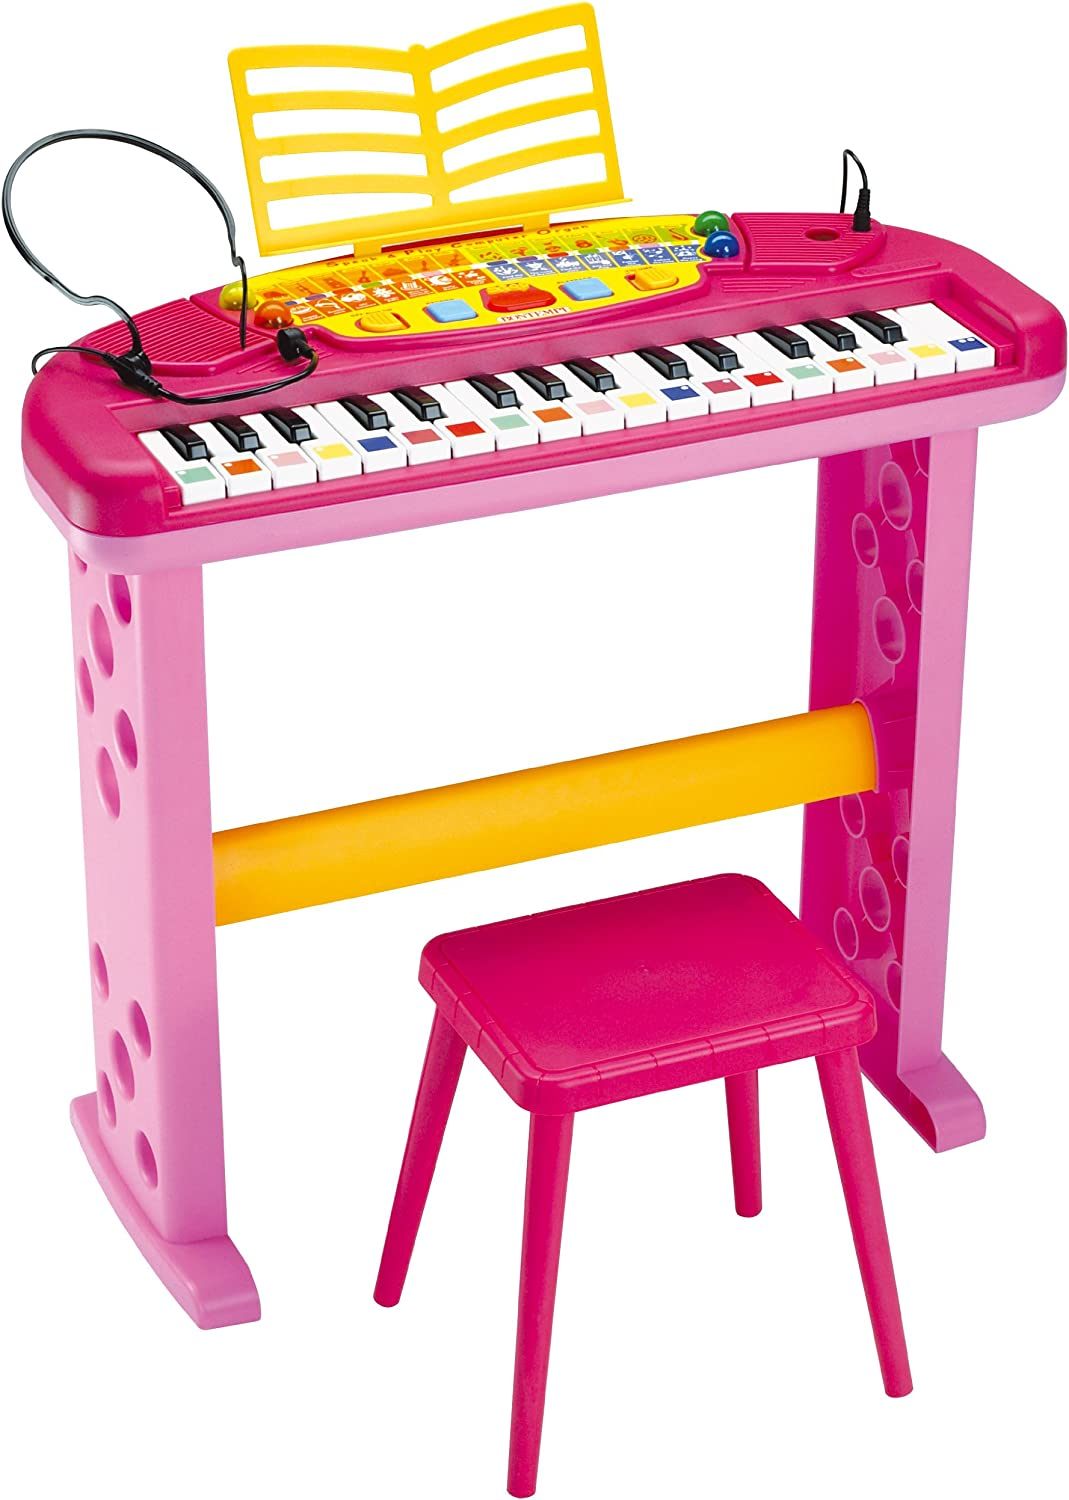 Bontempi Speak and Play Computer Organ